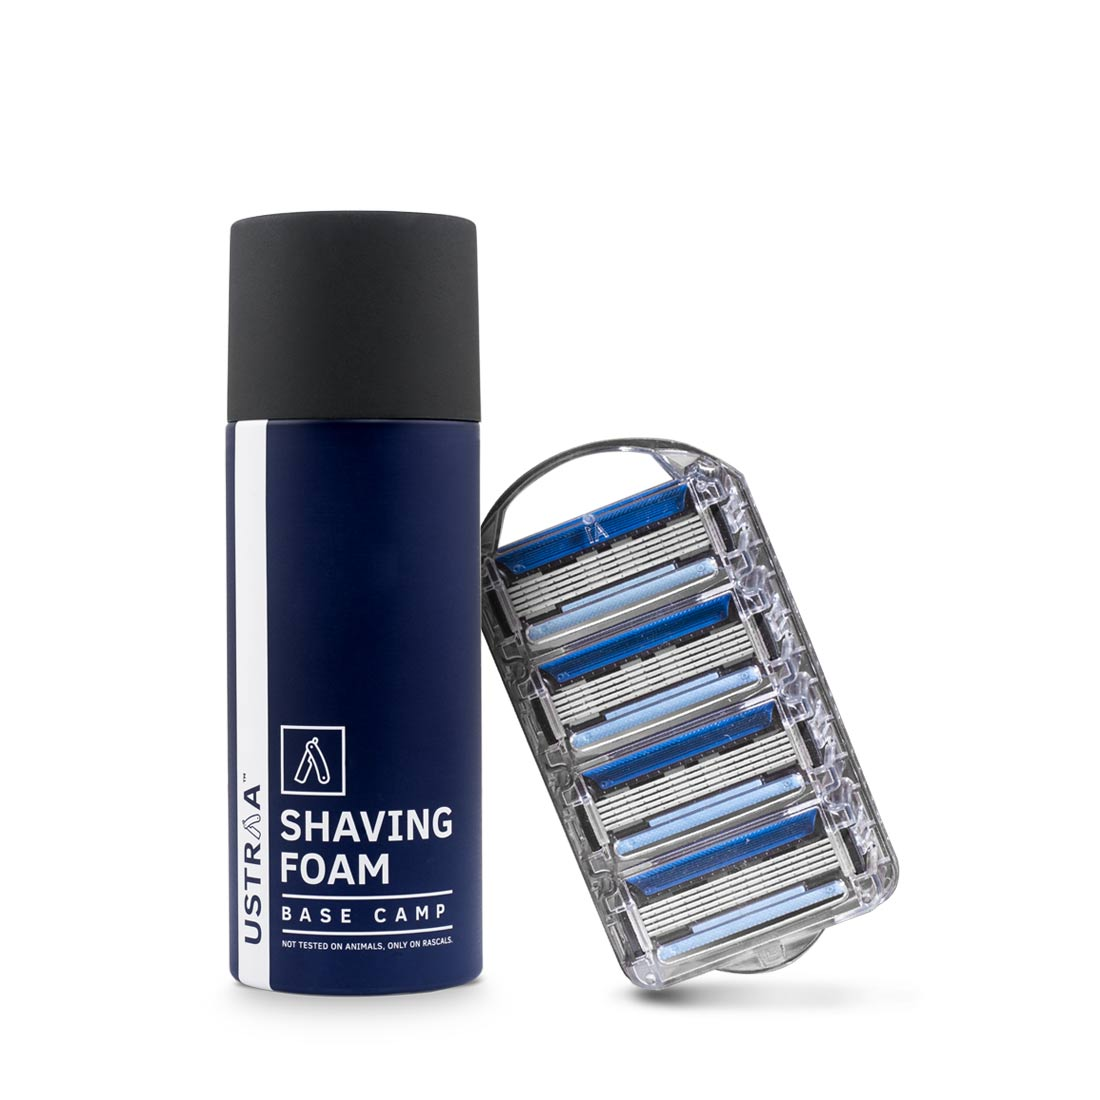 Base Camp Shaving Pack